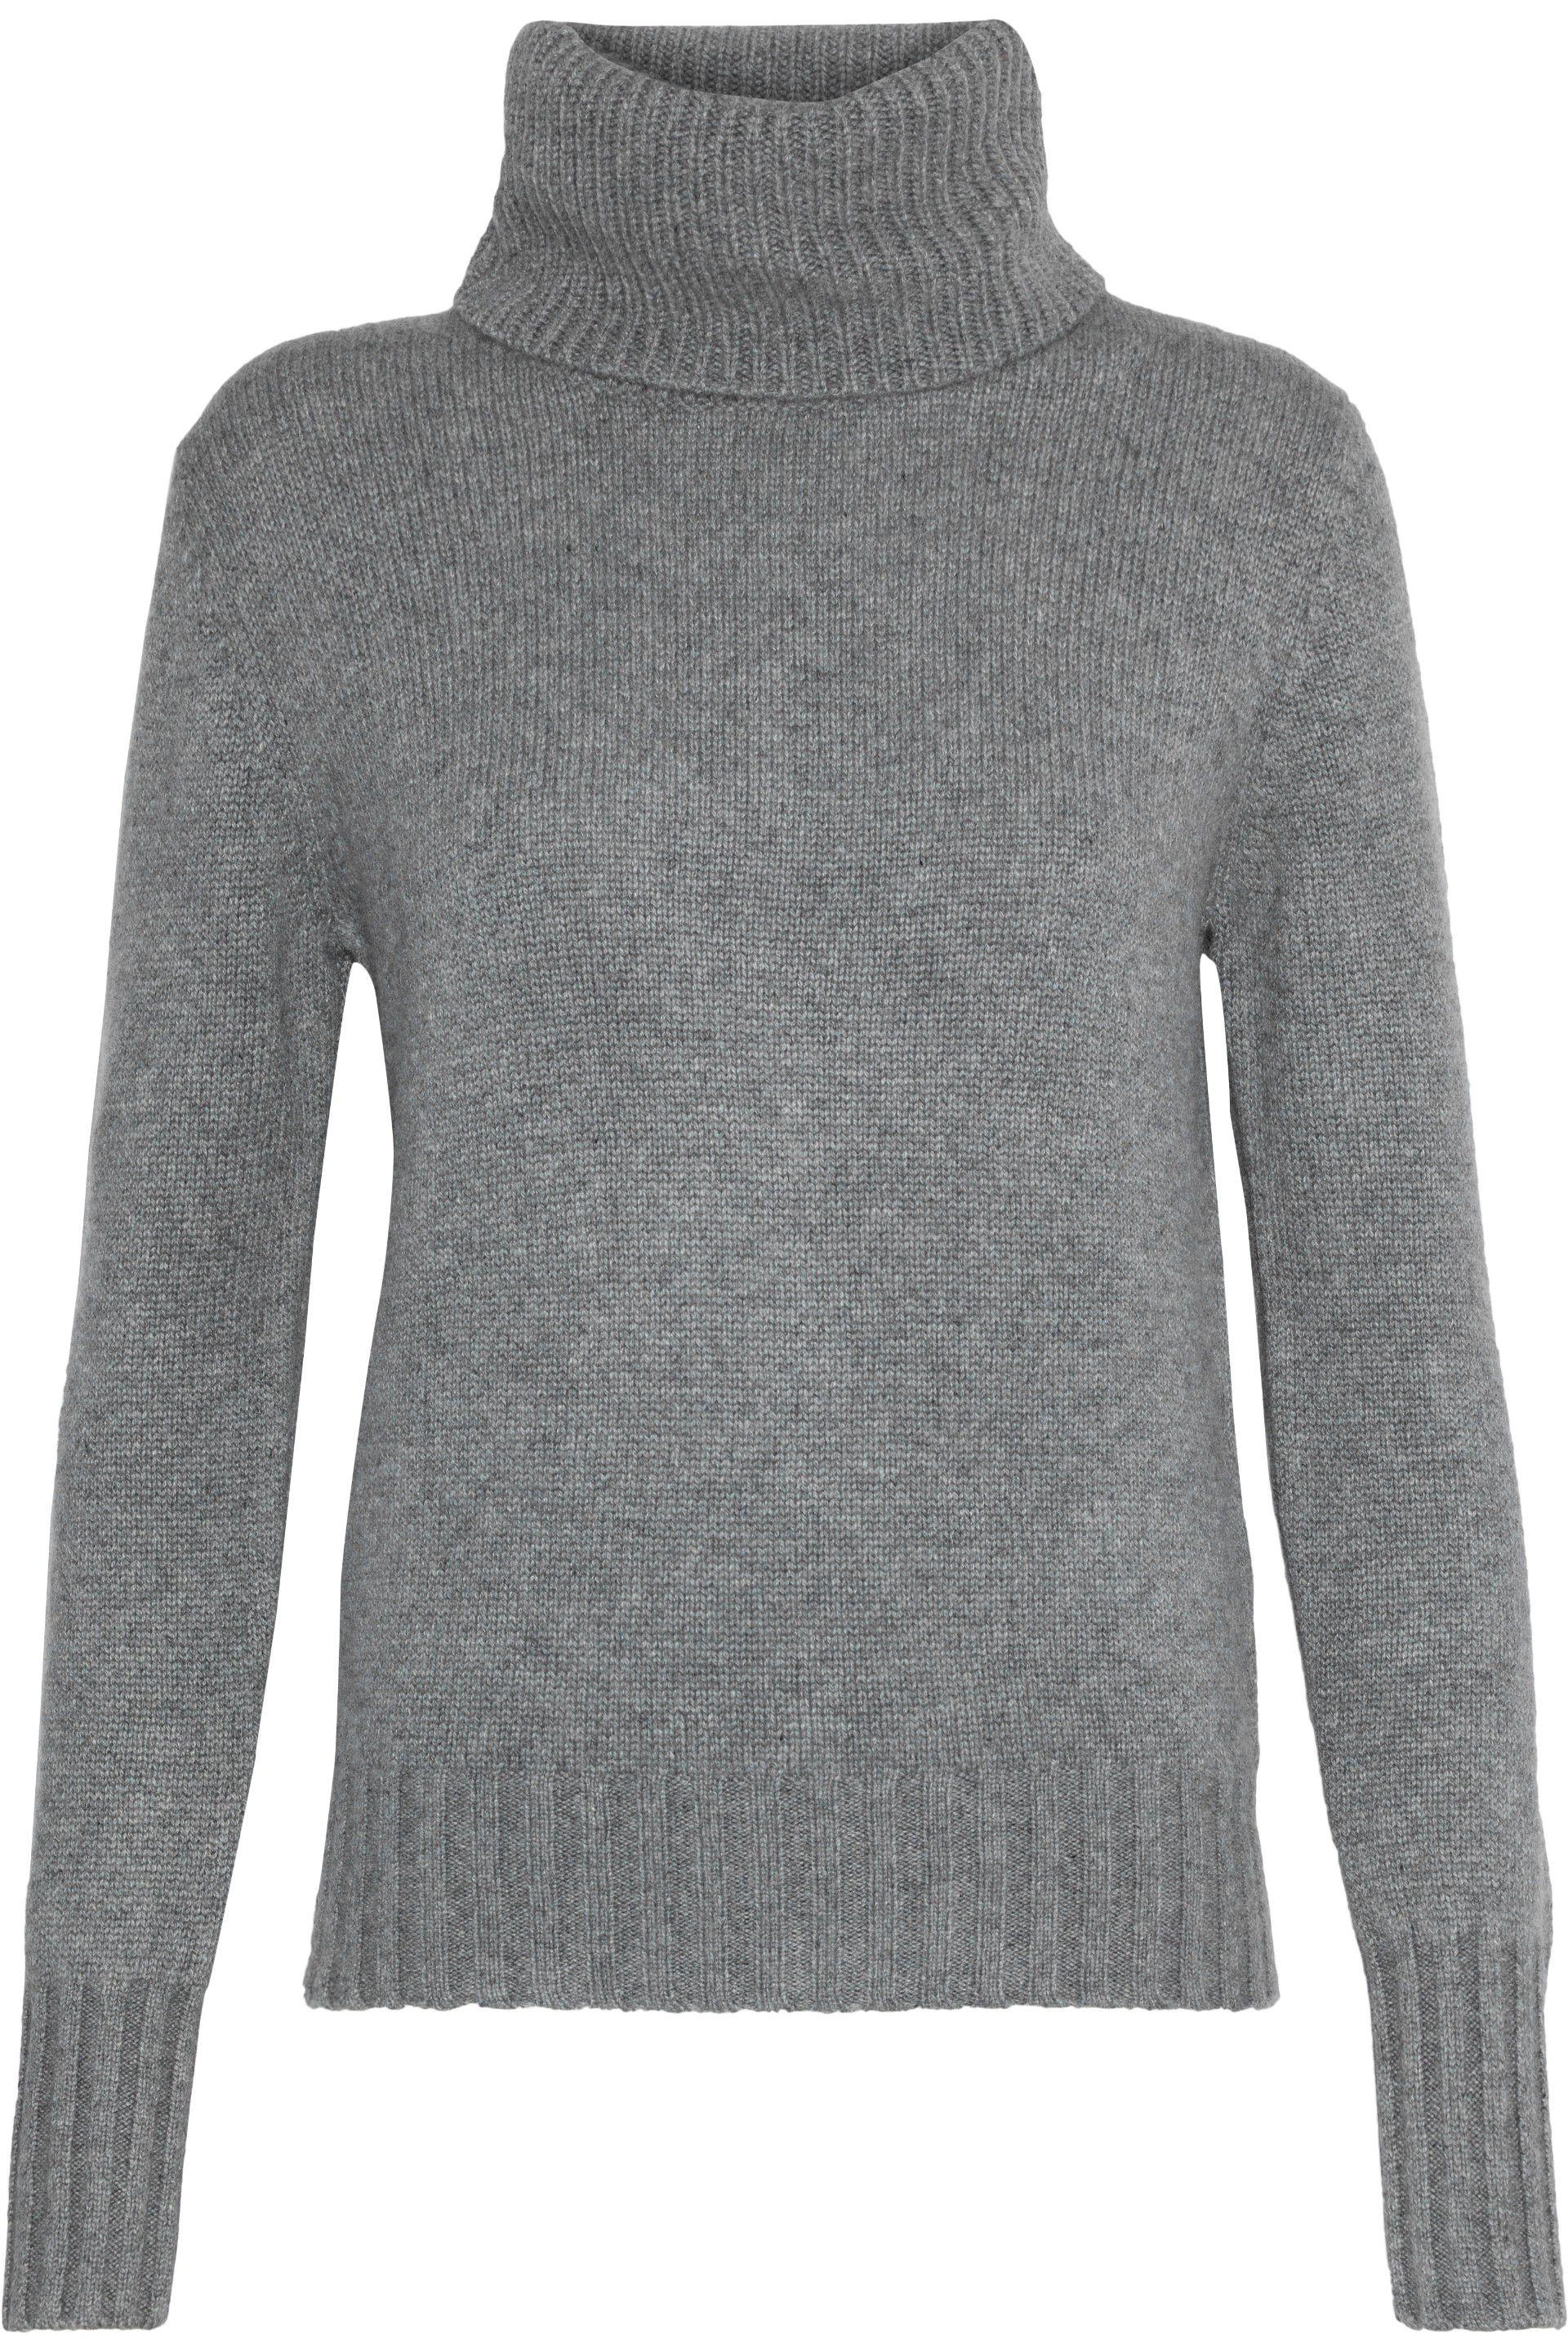 2b30a8a6d465 npeal-cashmere-Gray-Cashmere-Turtleneck-Sweater.jpeg